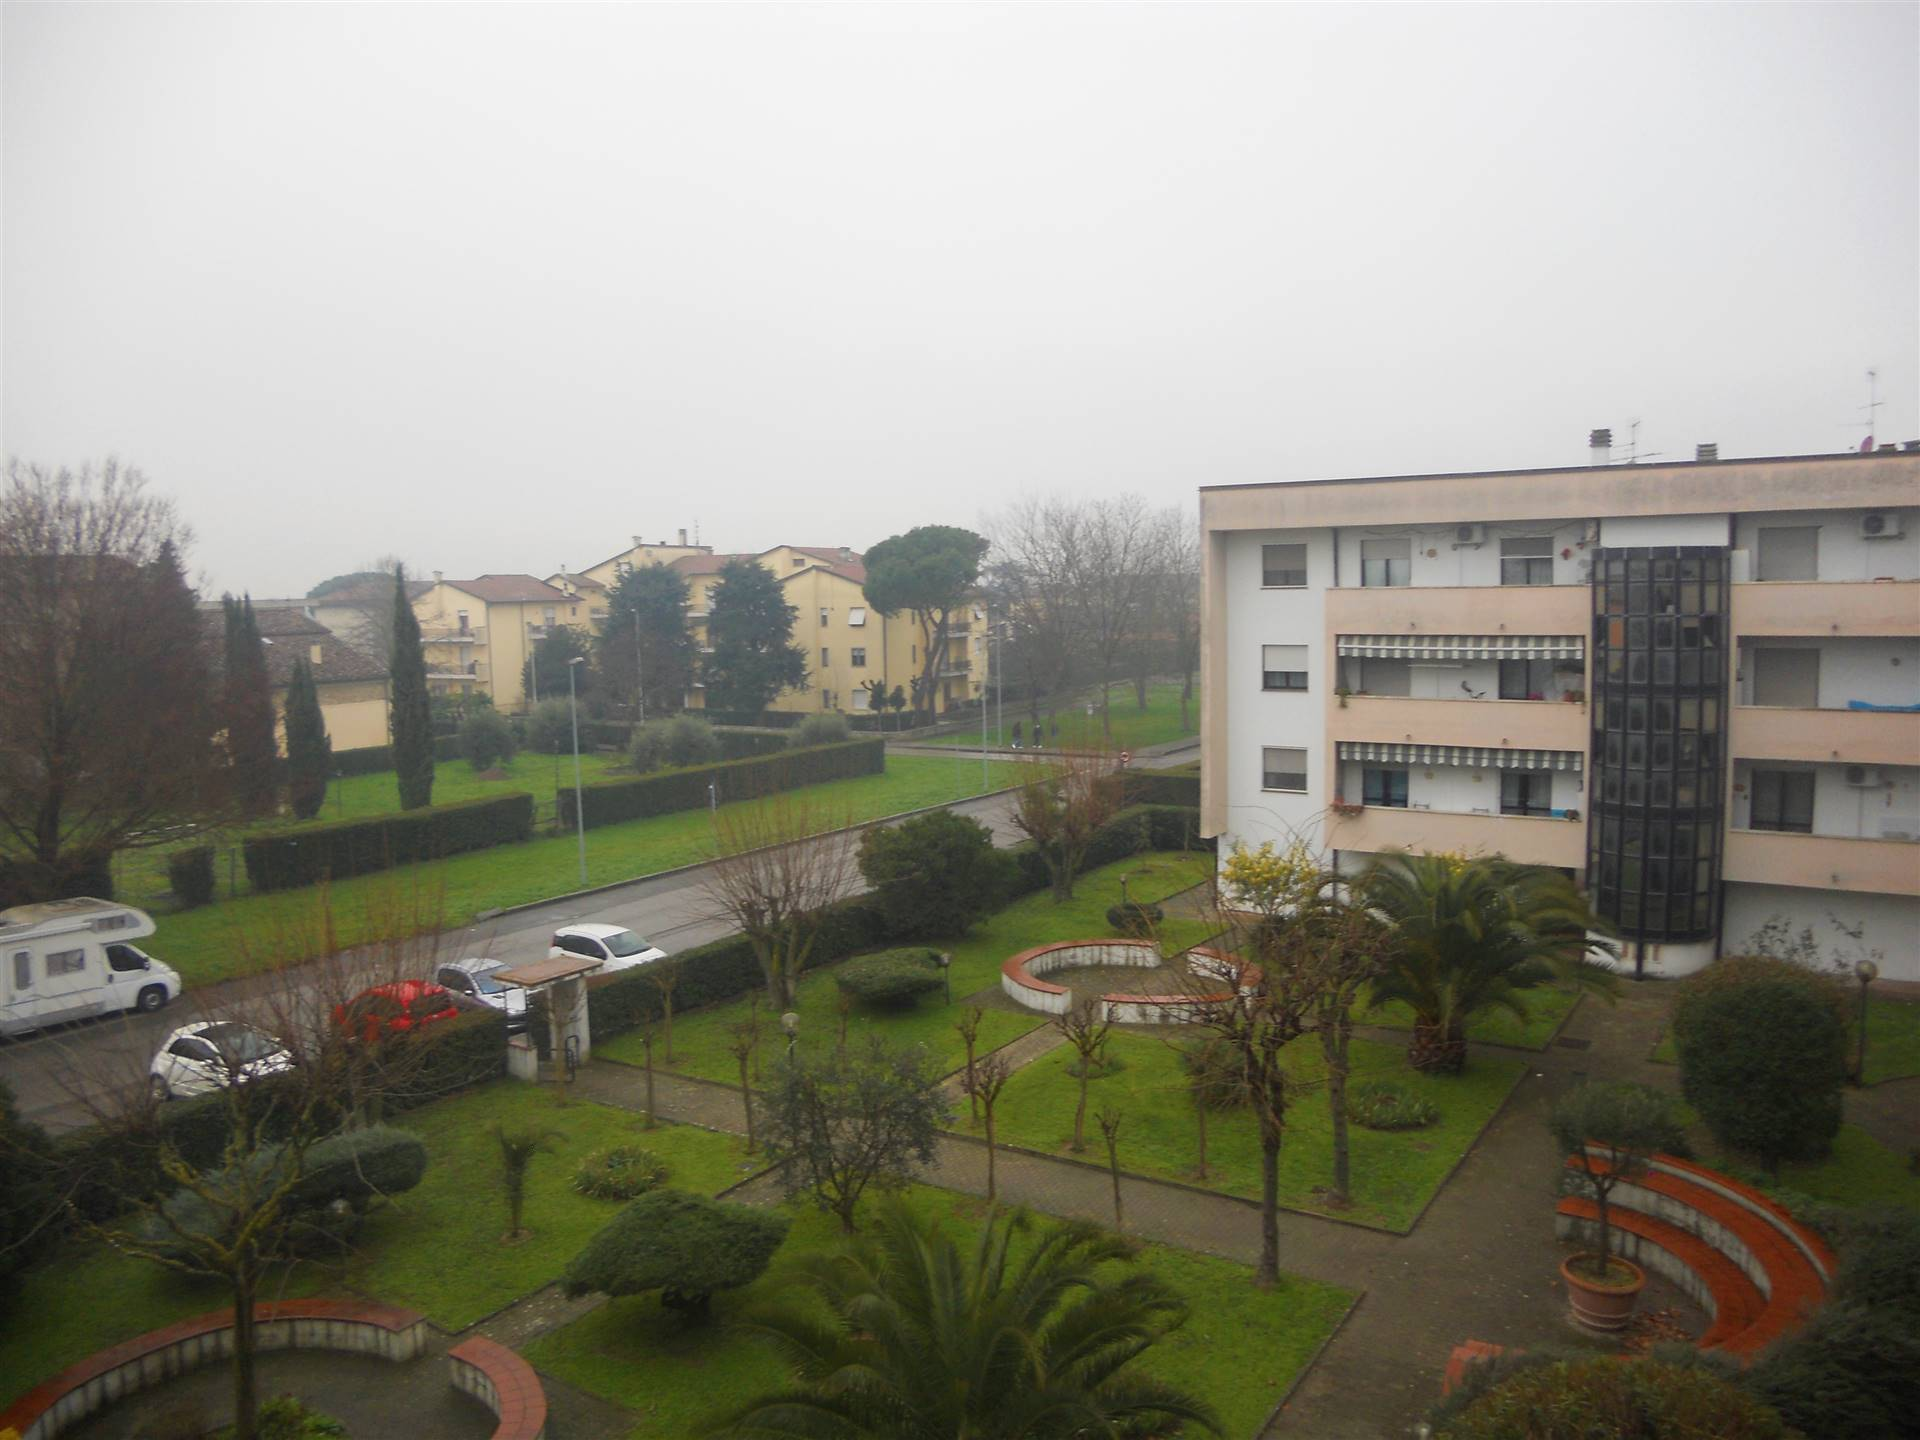 PAPERINO, PRATO, Apartment for sale of 80 Sq. mt., Good condition, Heating Individual heating system, Energetic class: G, placed at 3° on 3, composed